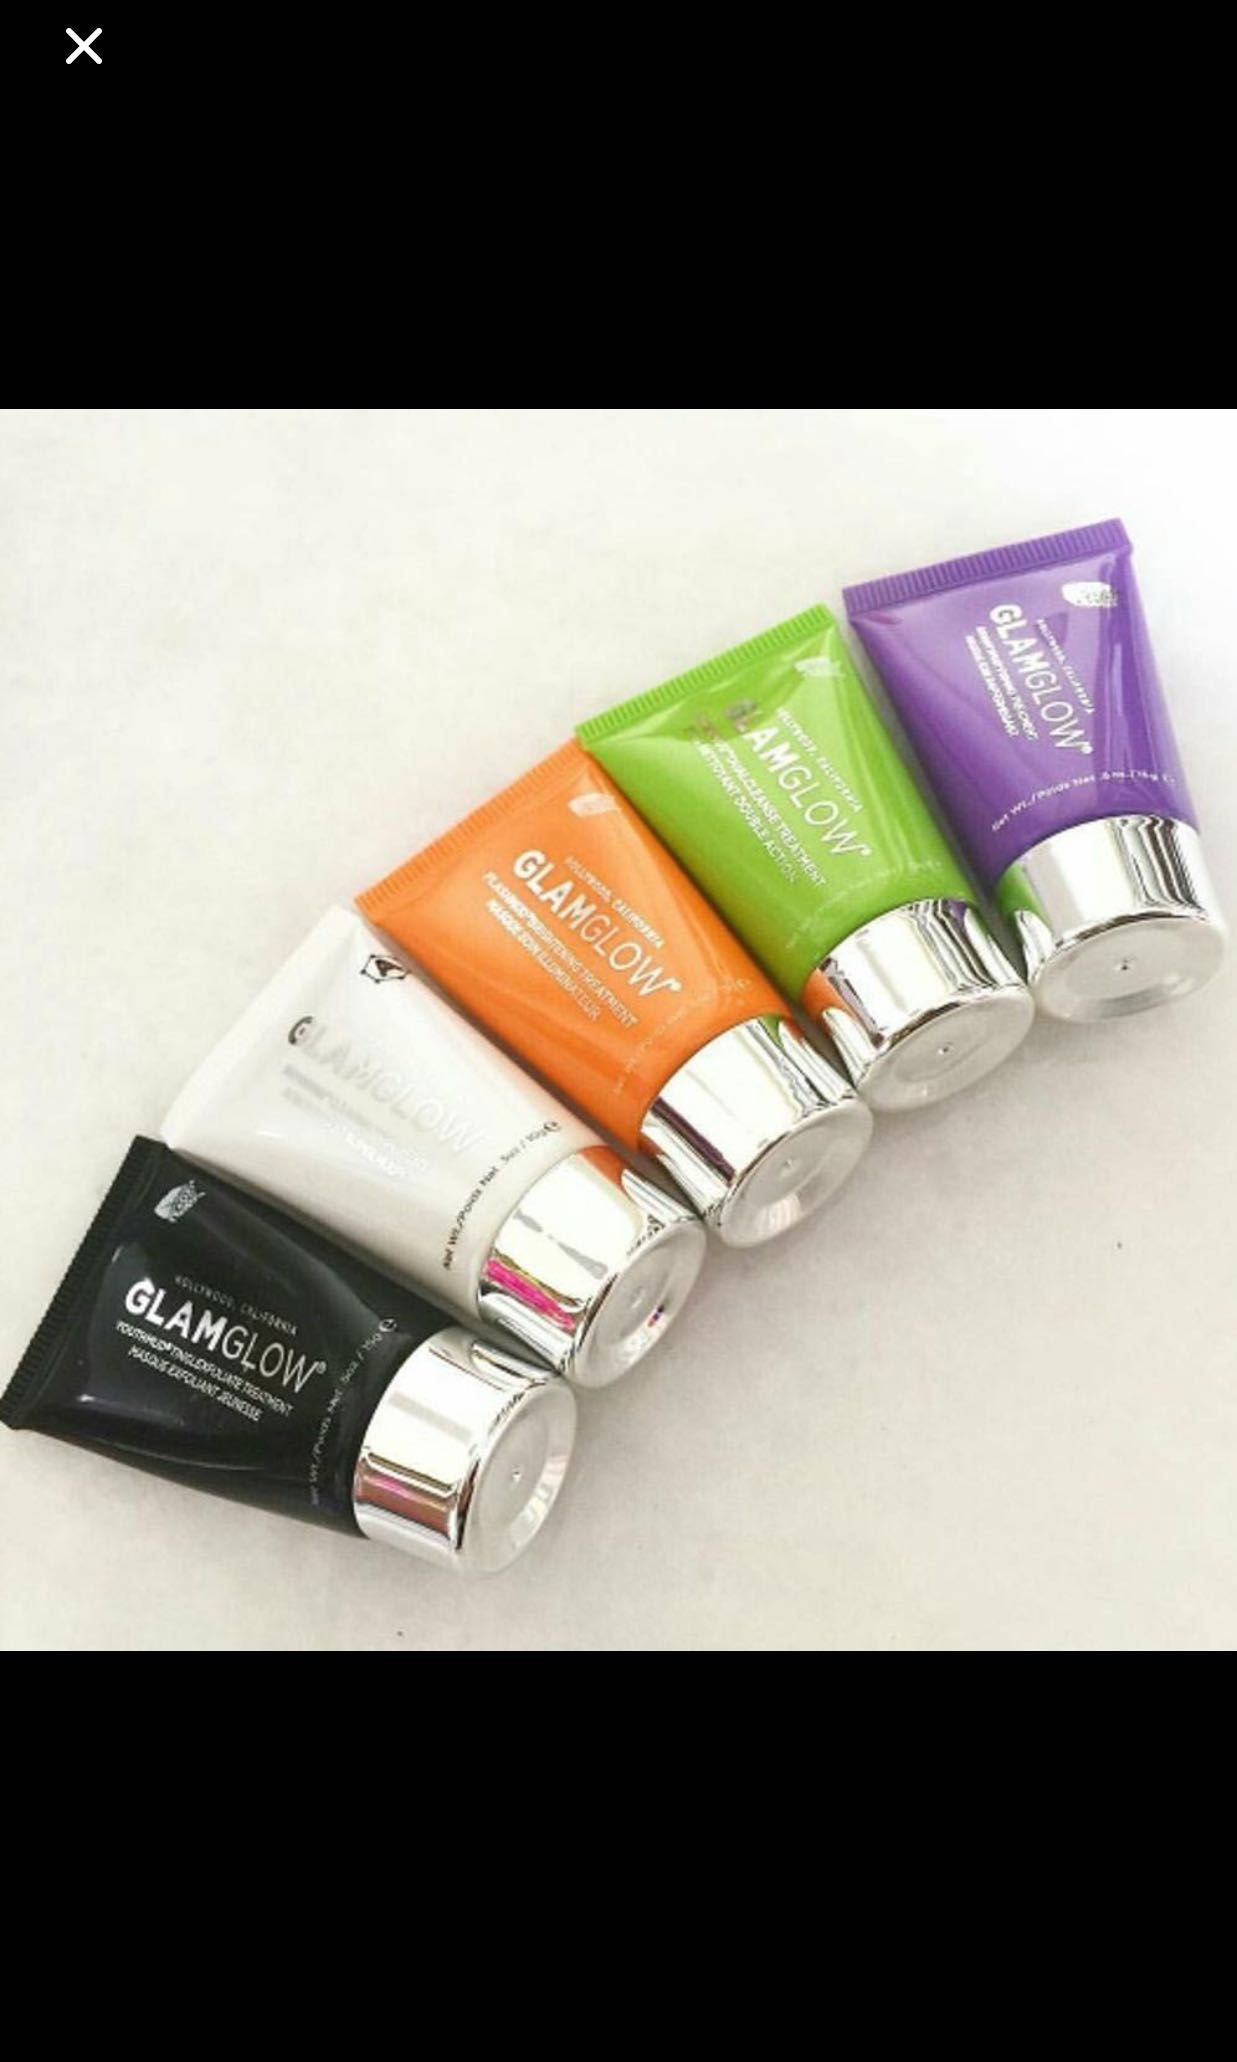 Glamglow Travel Size Tube 15gr 100% ORIGINAL!!!